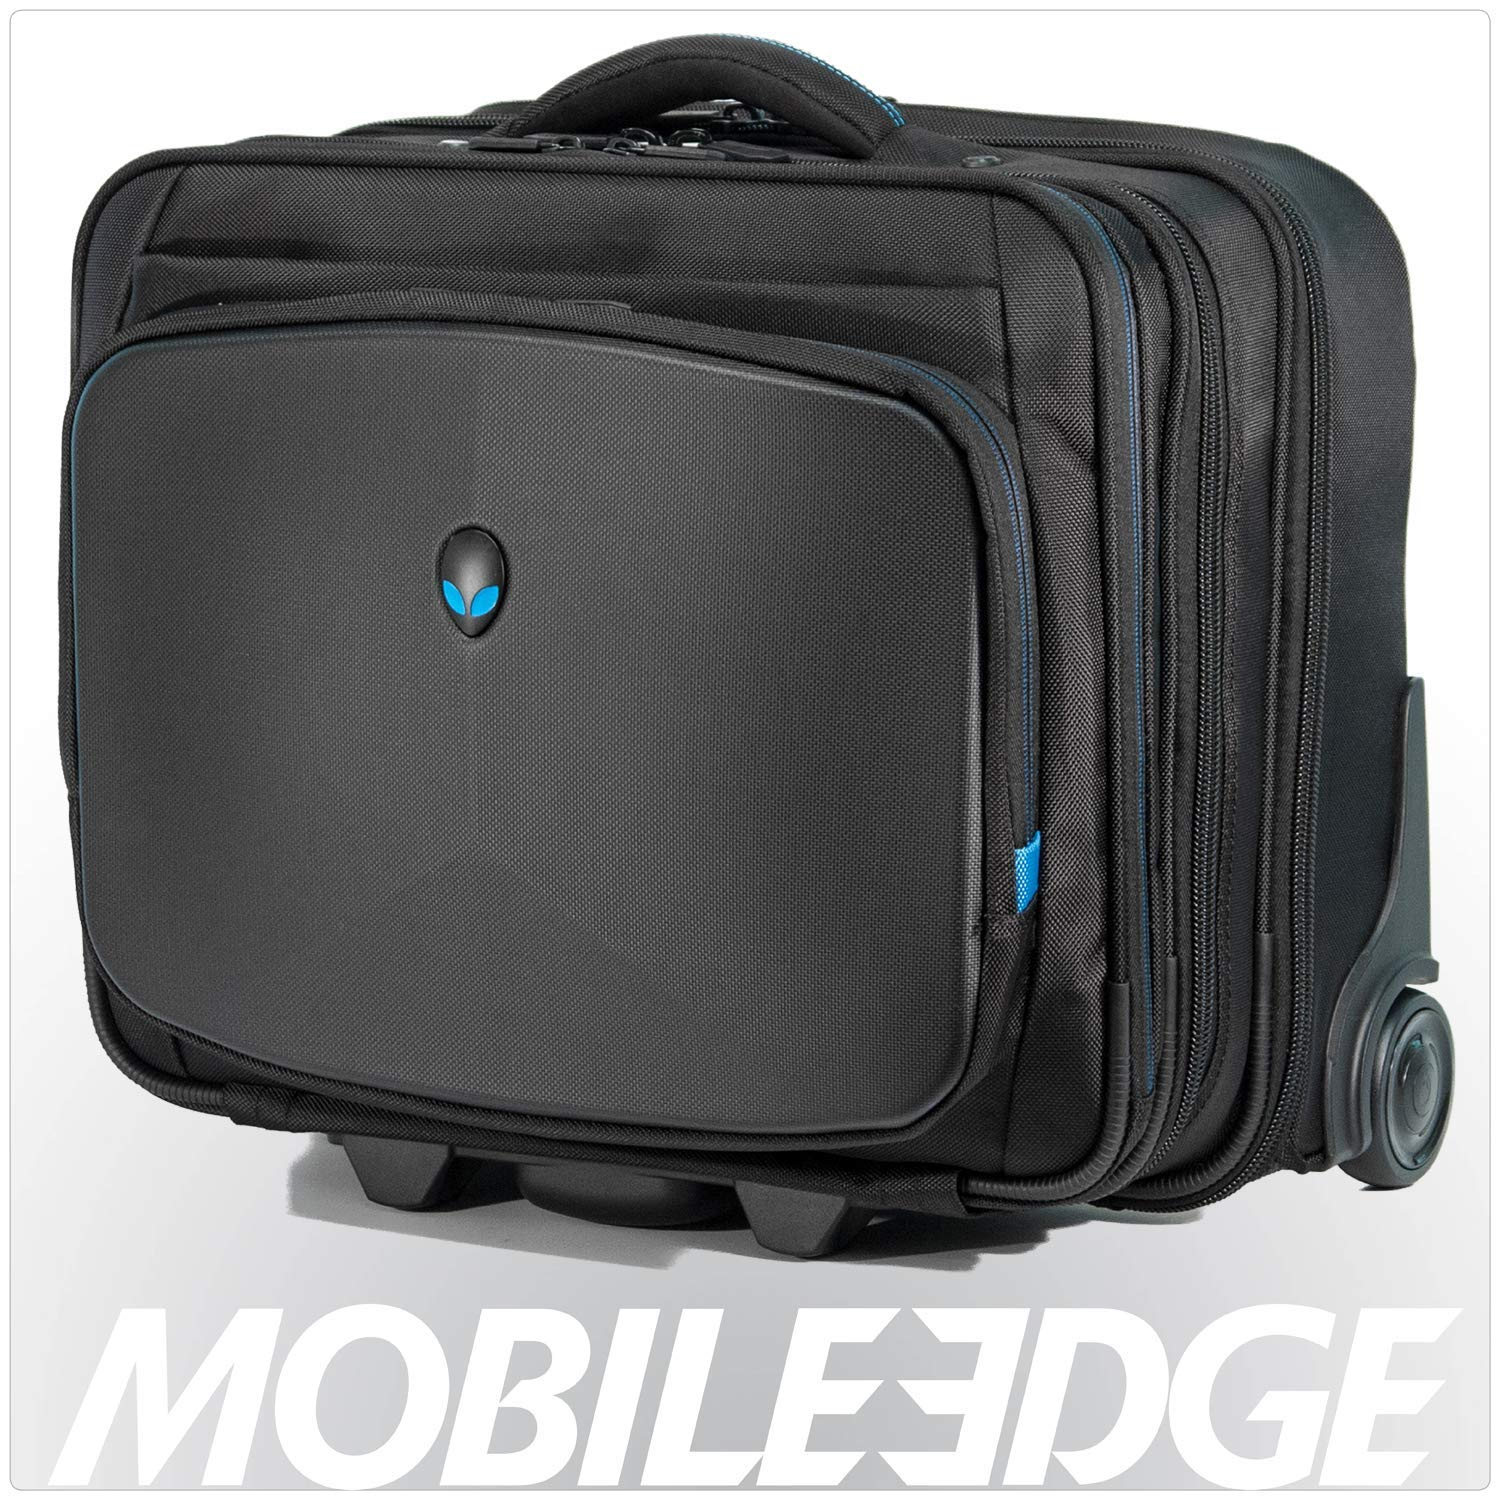 Mobile Edge Alienware Vindicator Bag Rolling Laptop Case 13 Inch to 17 Inch Black AWVRC1 by Mobile Edge